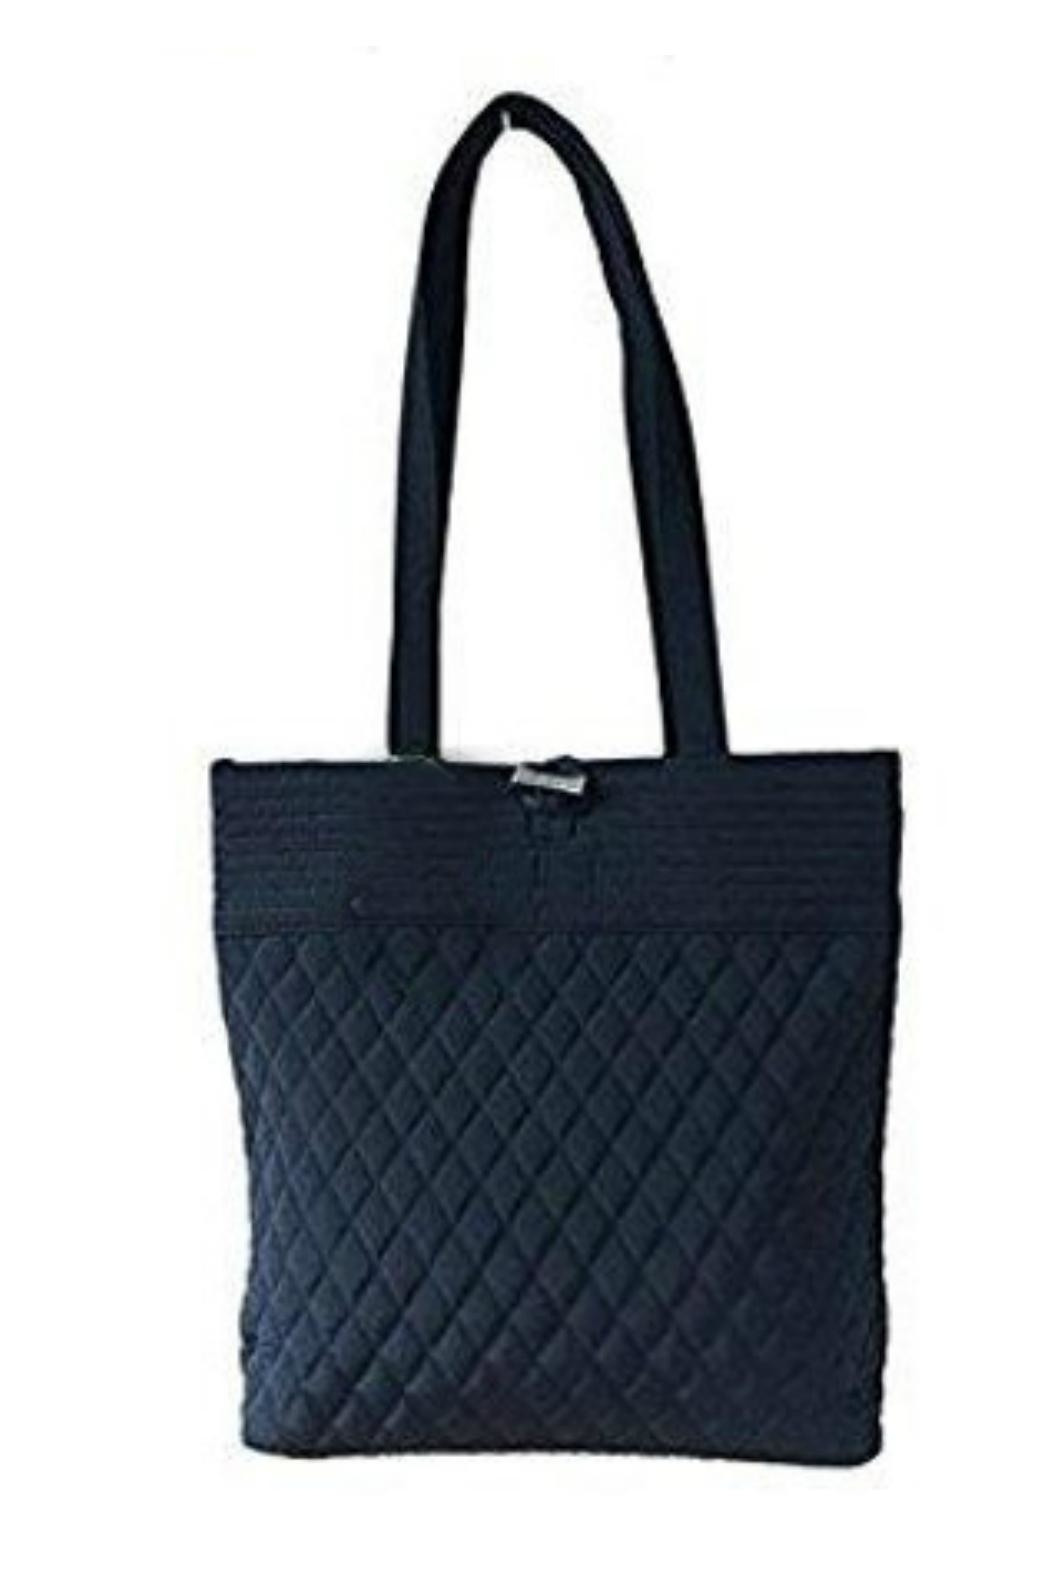 Vera Bradley Classic Black Tote - Front Cropped Image